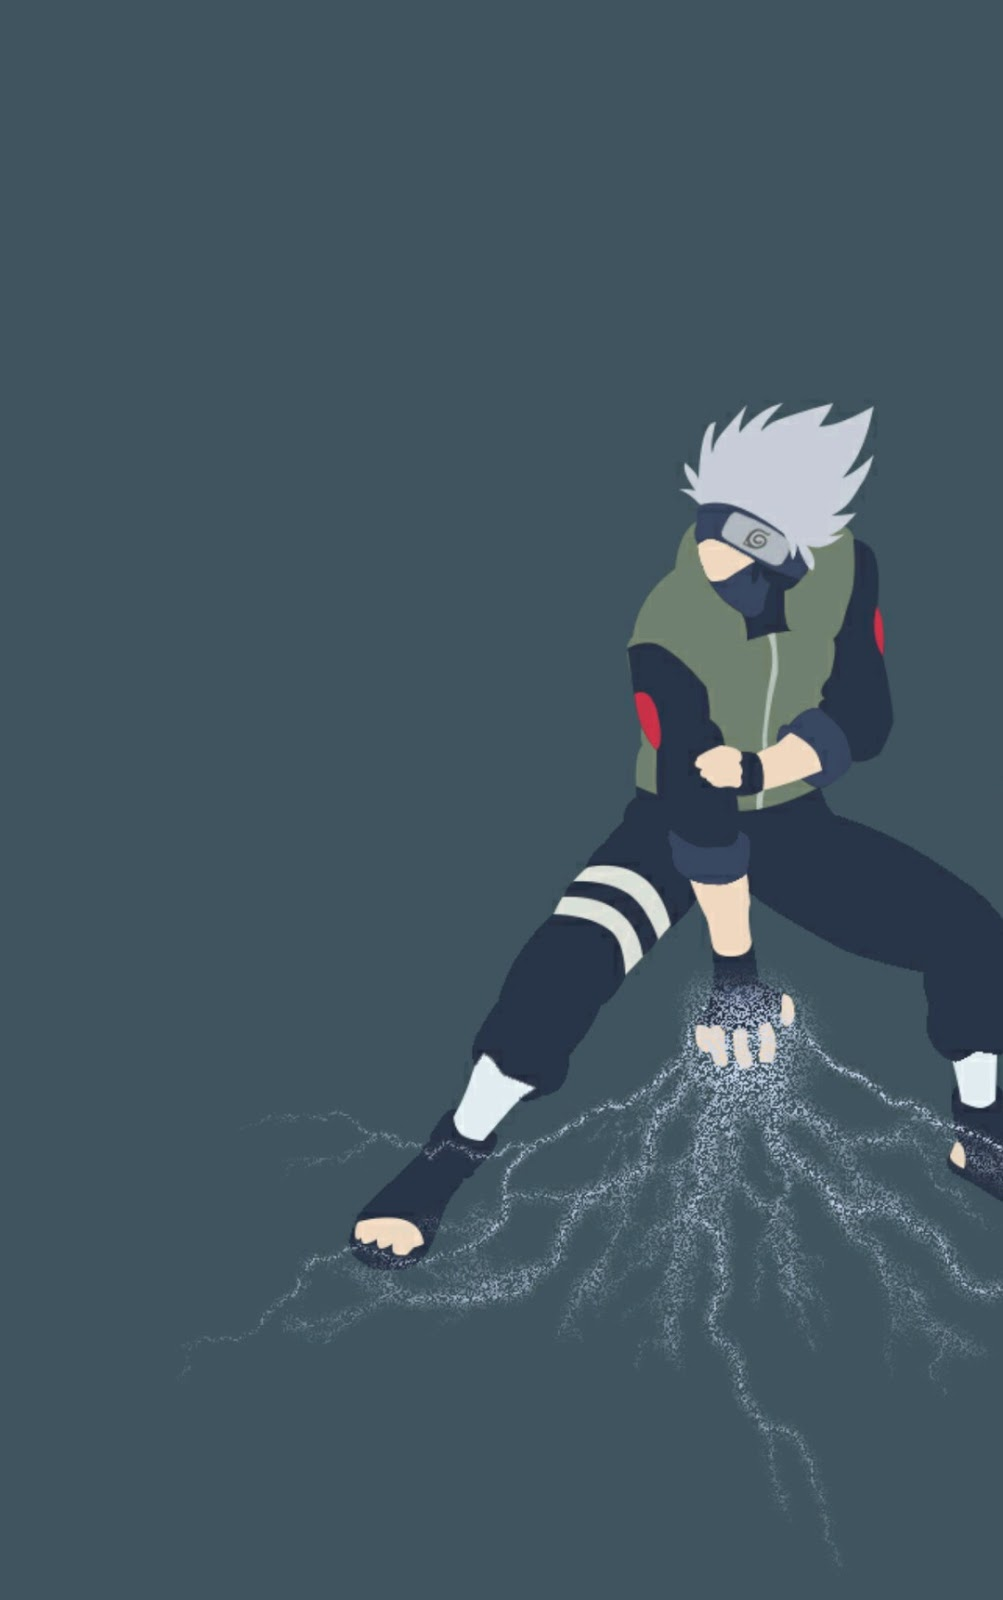 4 Download Wallpaper hatake kakashi vector untuk Android dan Whatsapp